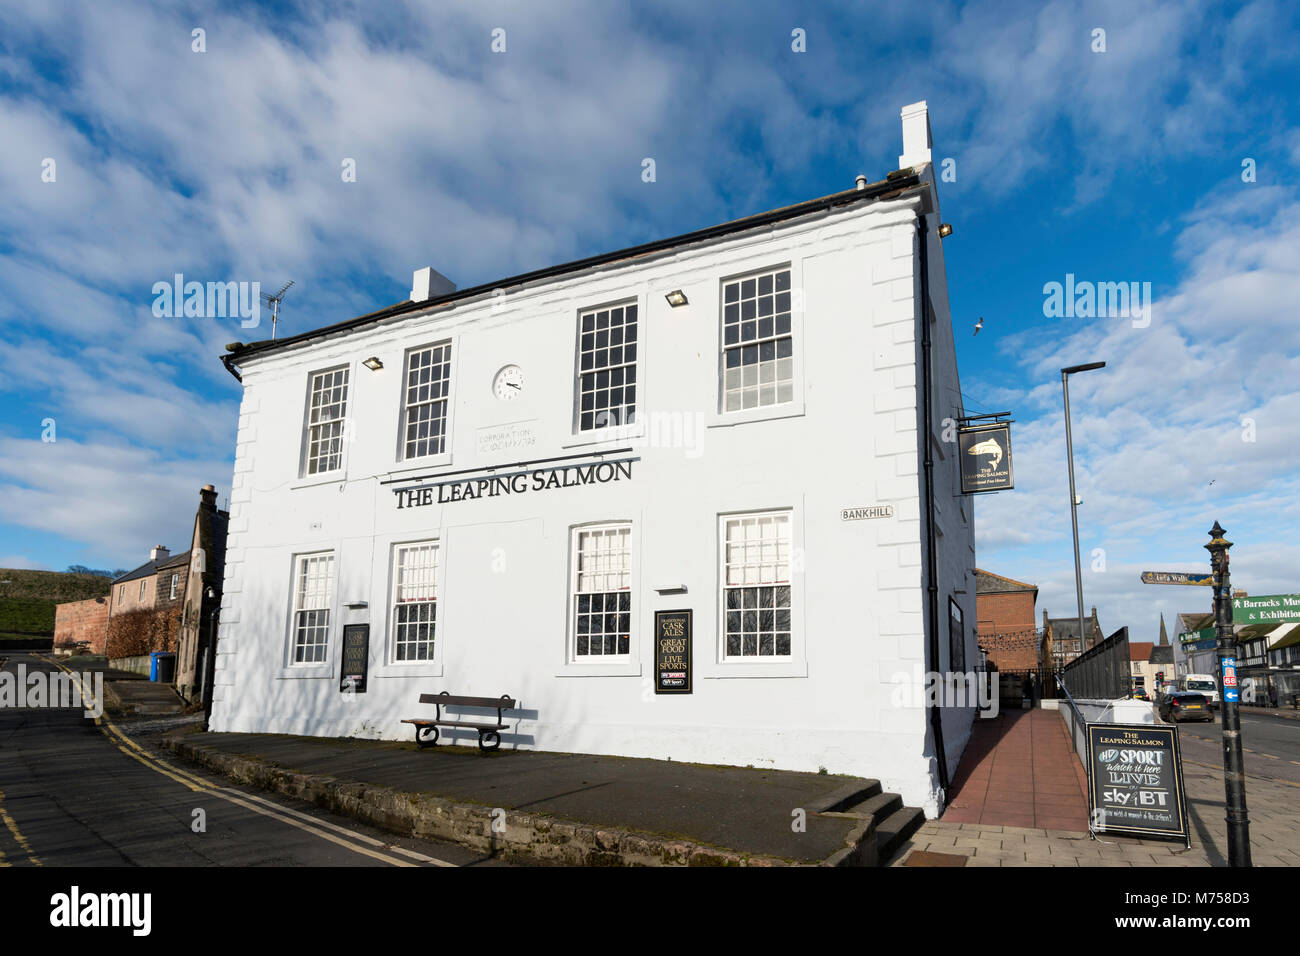 The Leaping Salmon pub, Berwick upon Tweed, Northumberland, England, UK Stock Photo